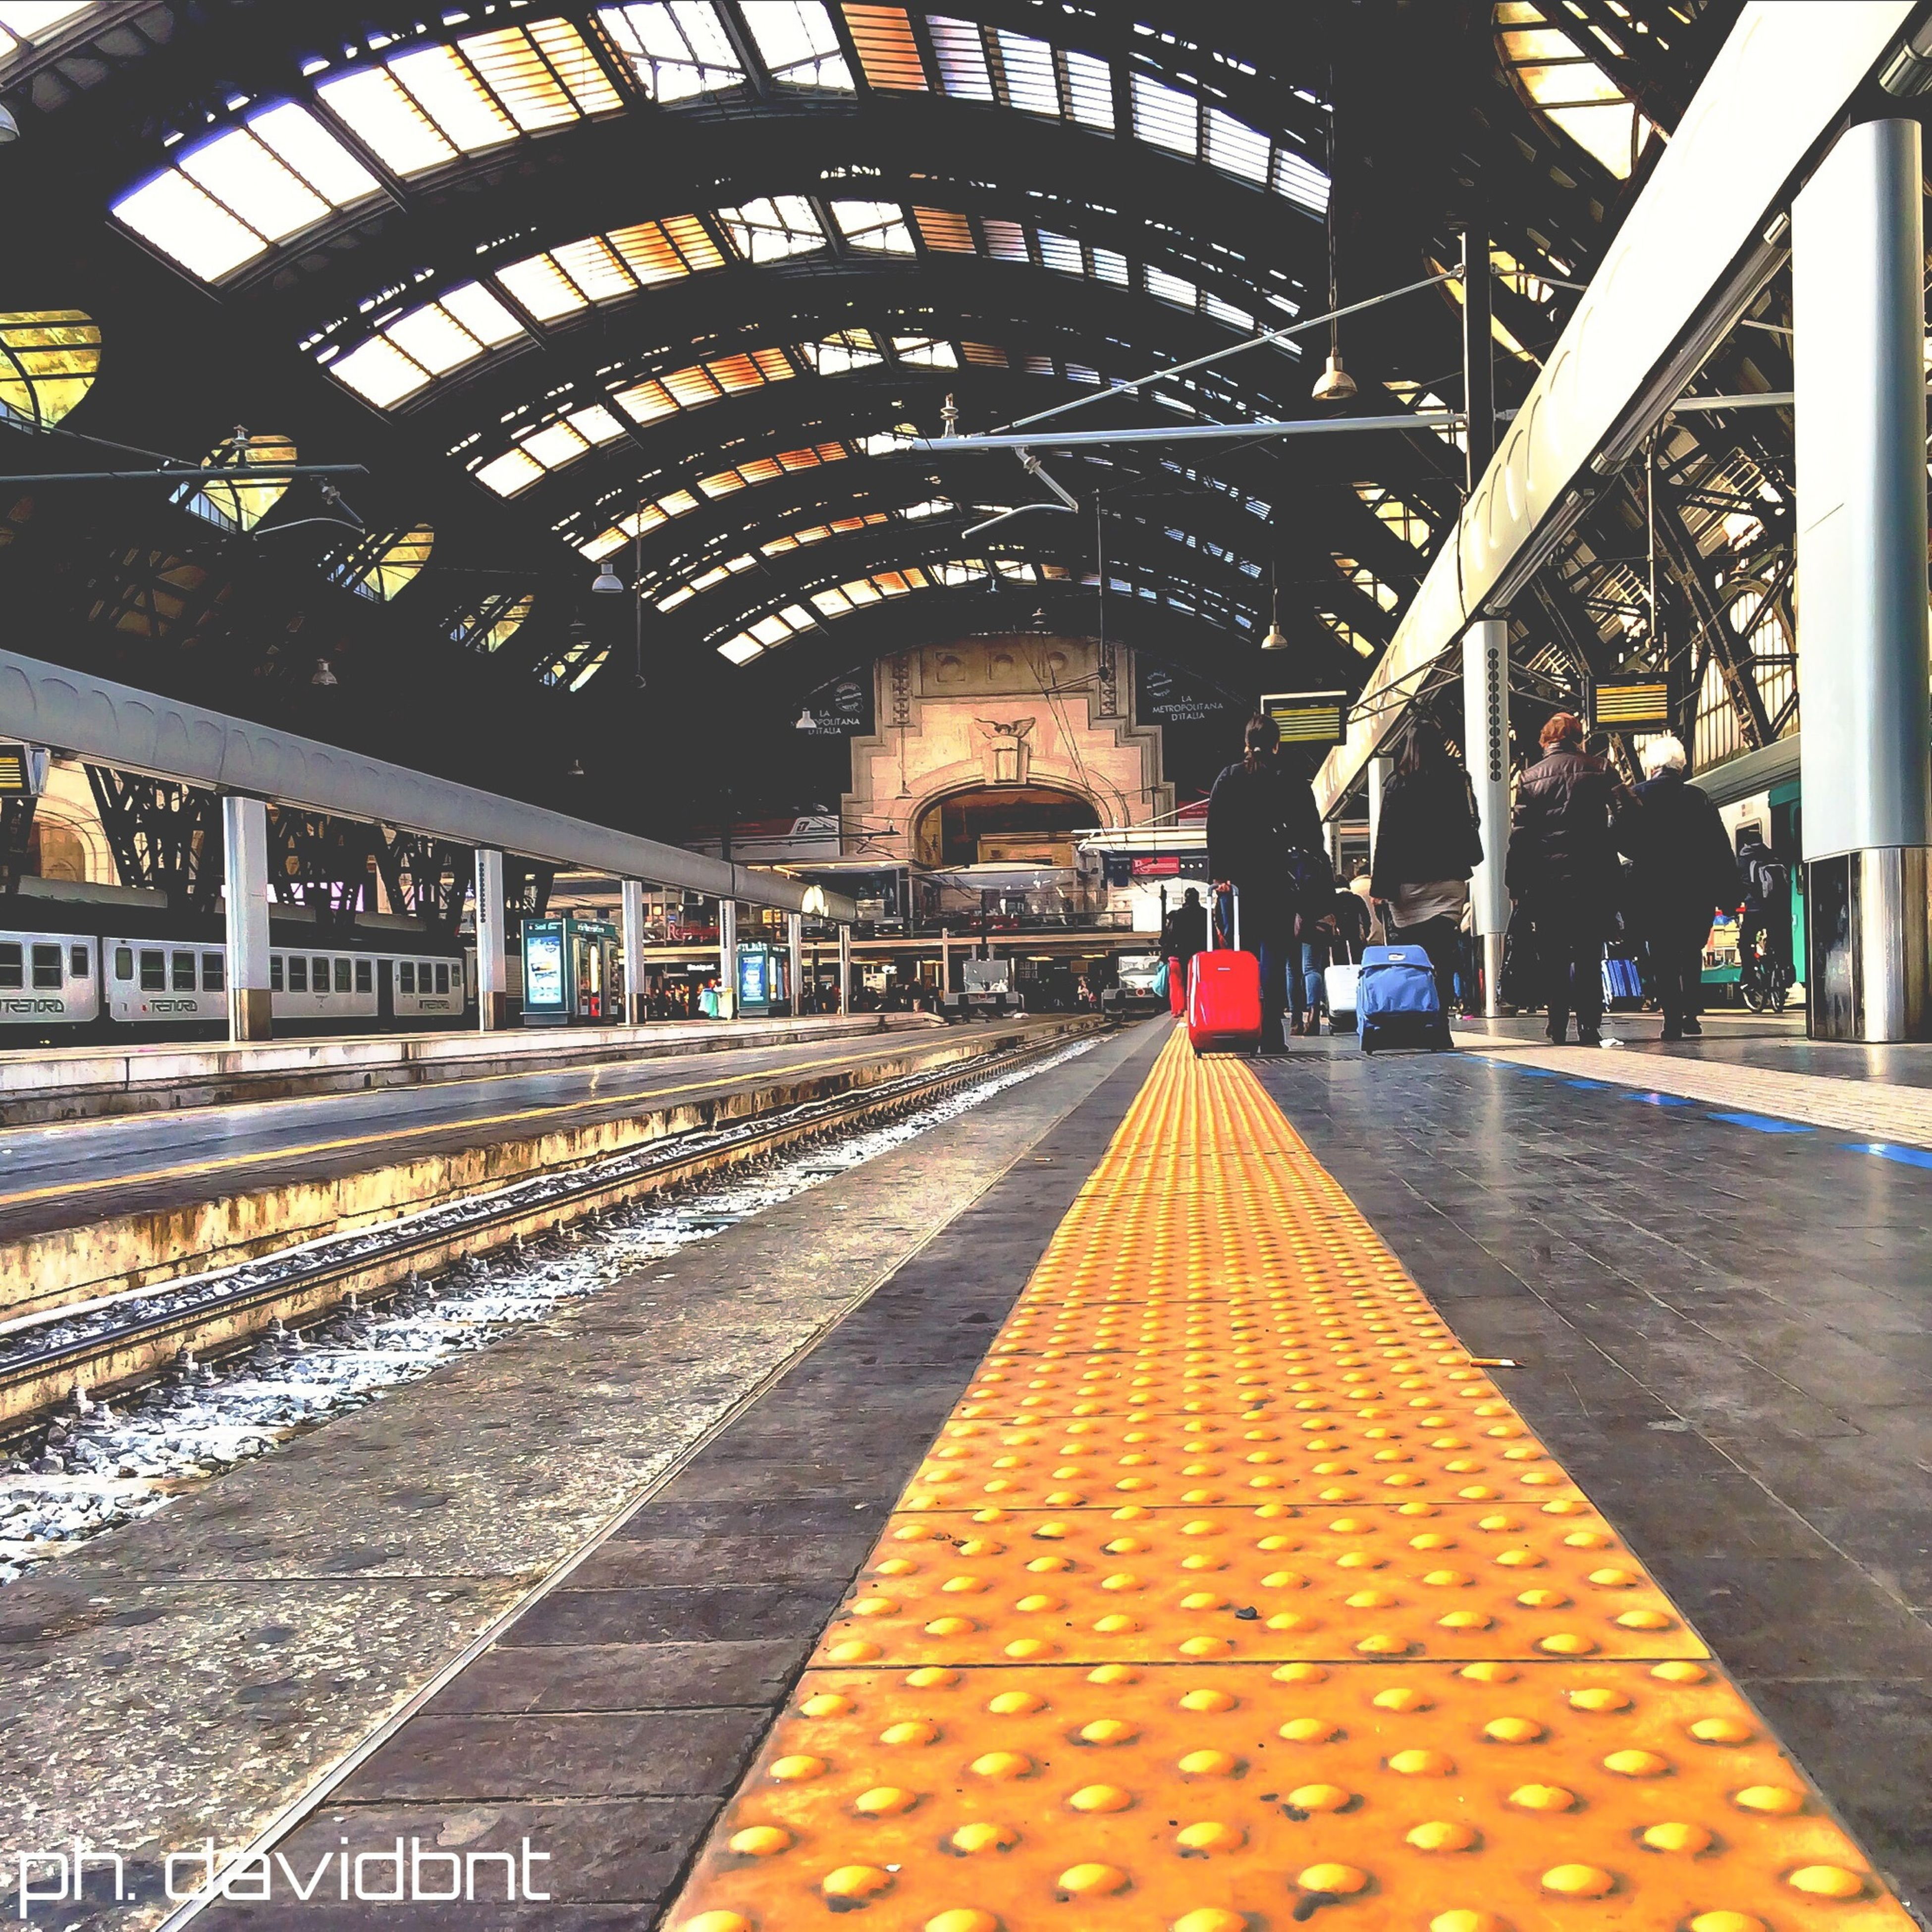 indoors, railroad track, rail transportation, ceiling, railroad station, public transportation, railroad station platform, diminishing perspective, the way forward, architecture, transportation, built structure, incidental people, illuminated, vanishing point, travel, subway station, subway, men